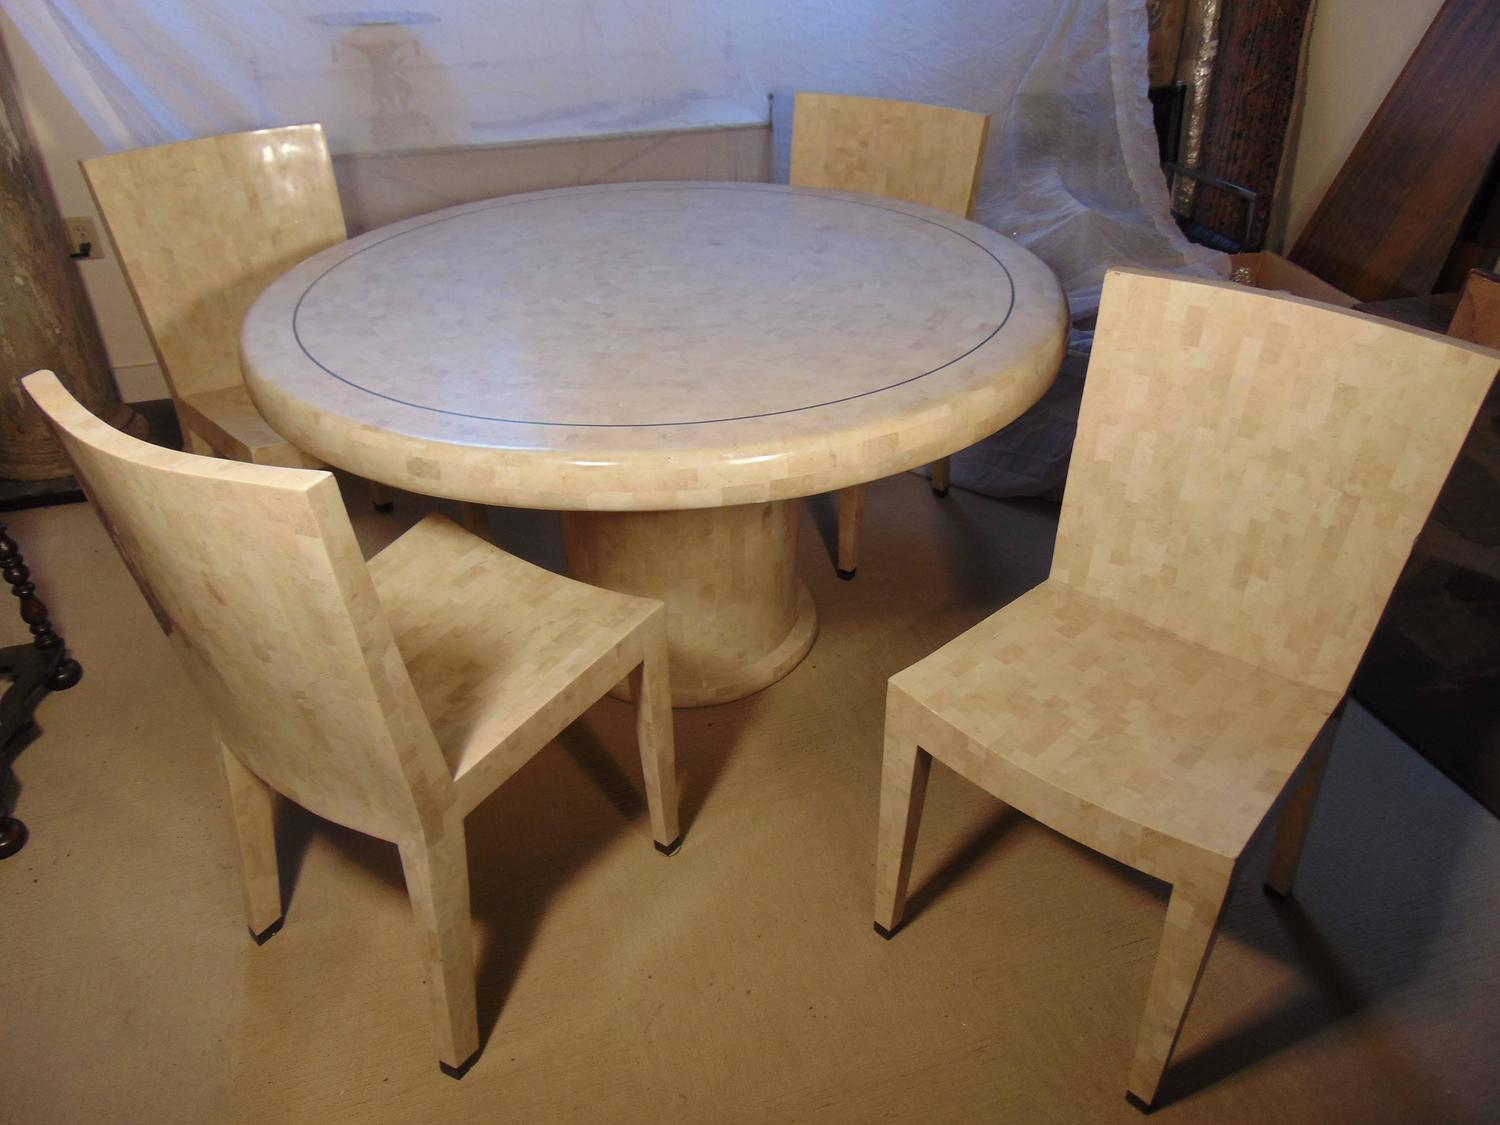 maitland smith dining chairs darien lake concert lawn tessellated marble table and four by